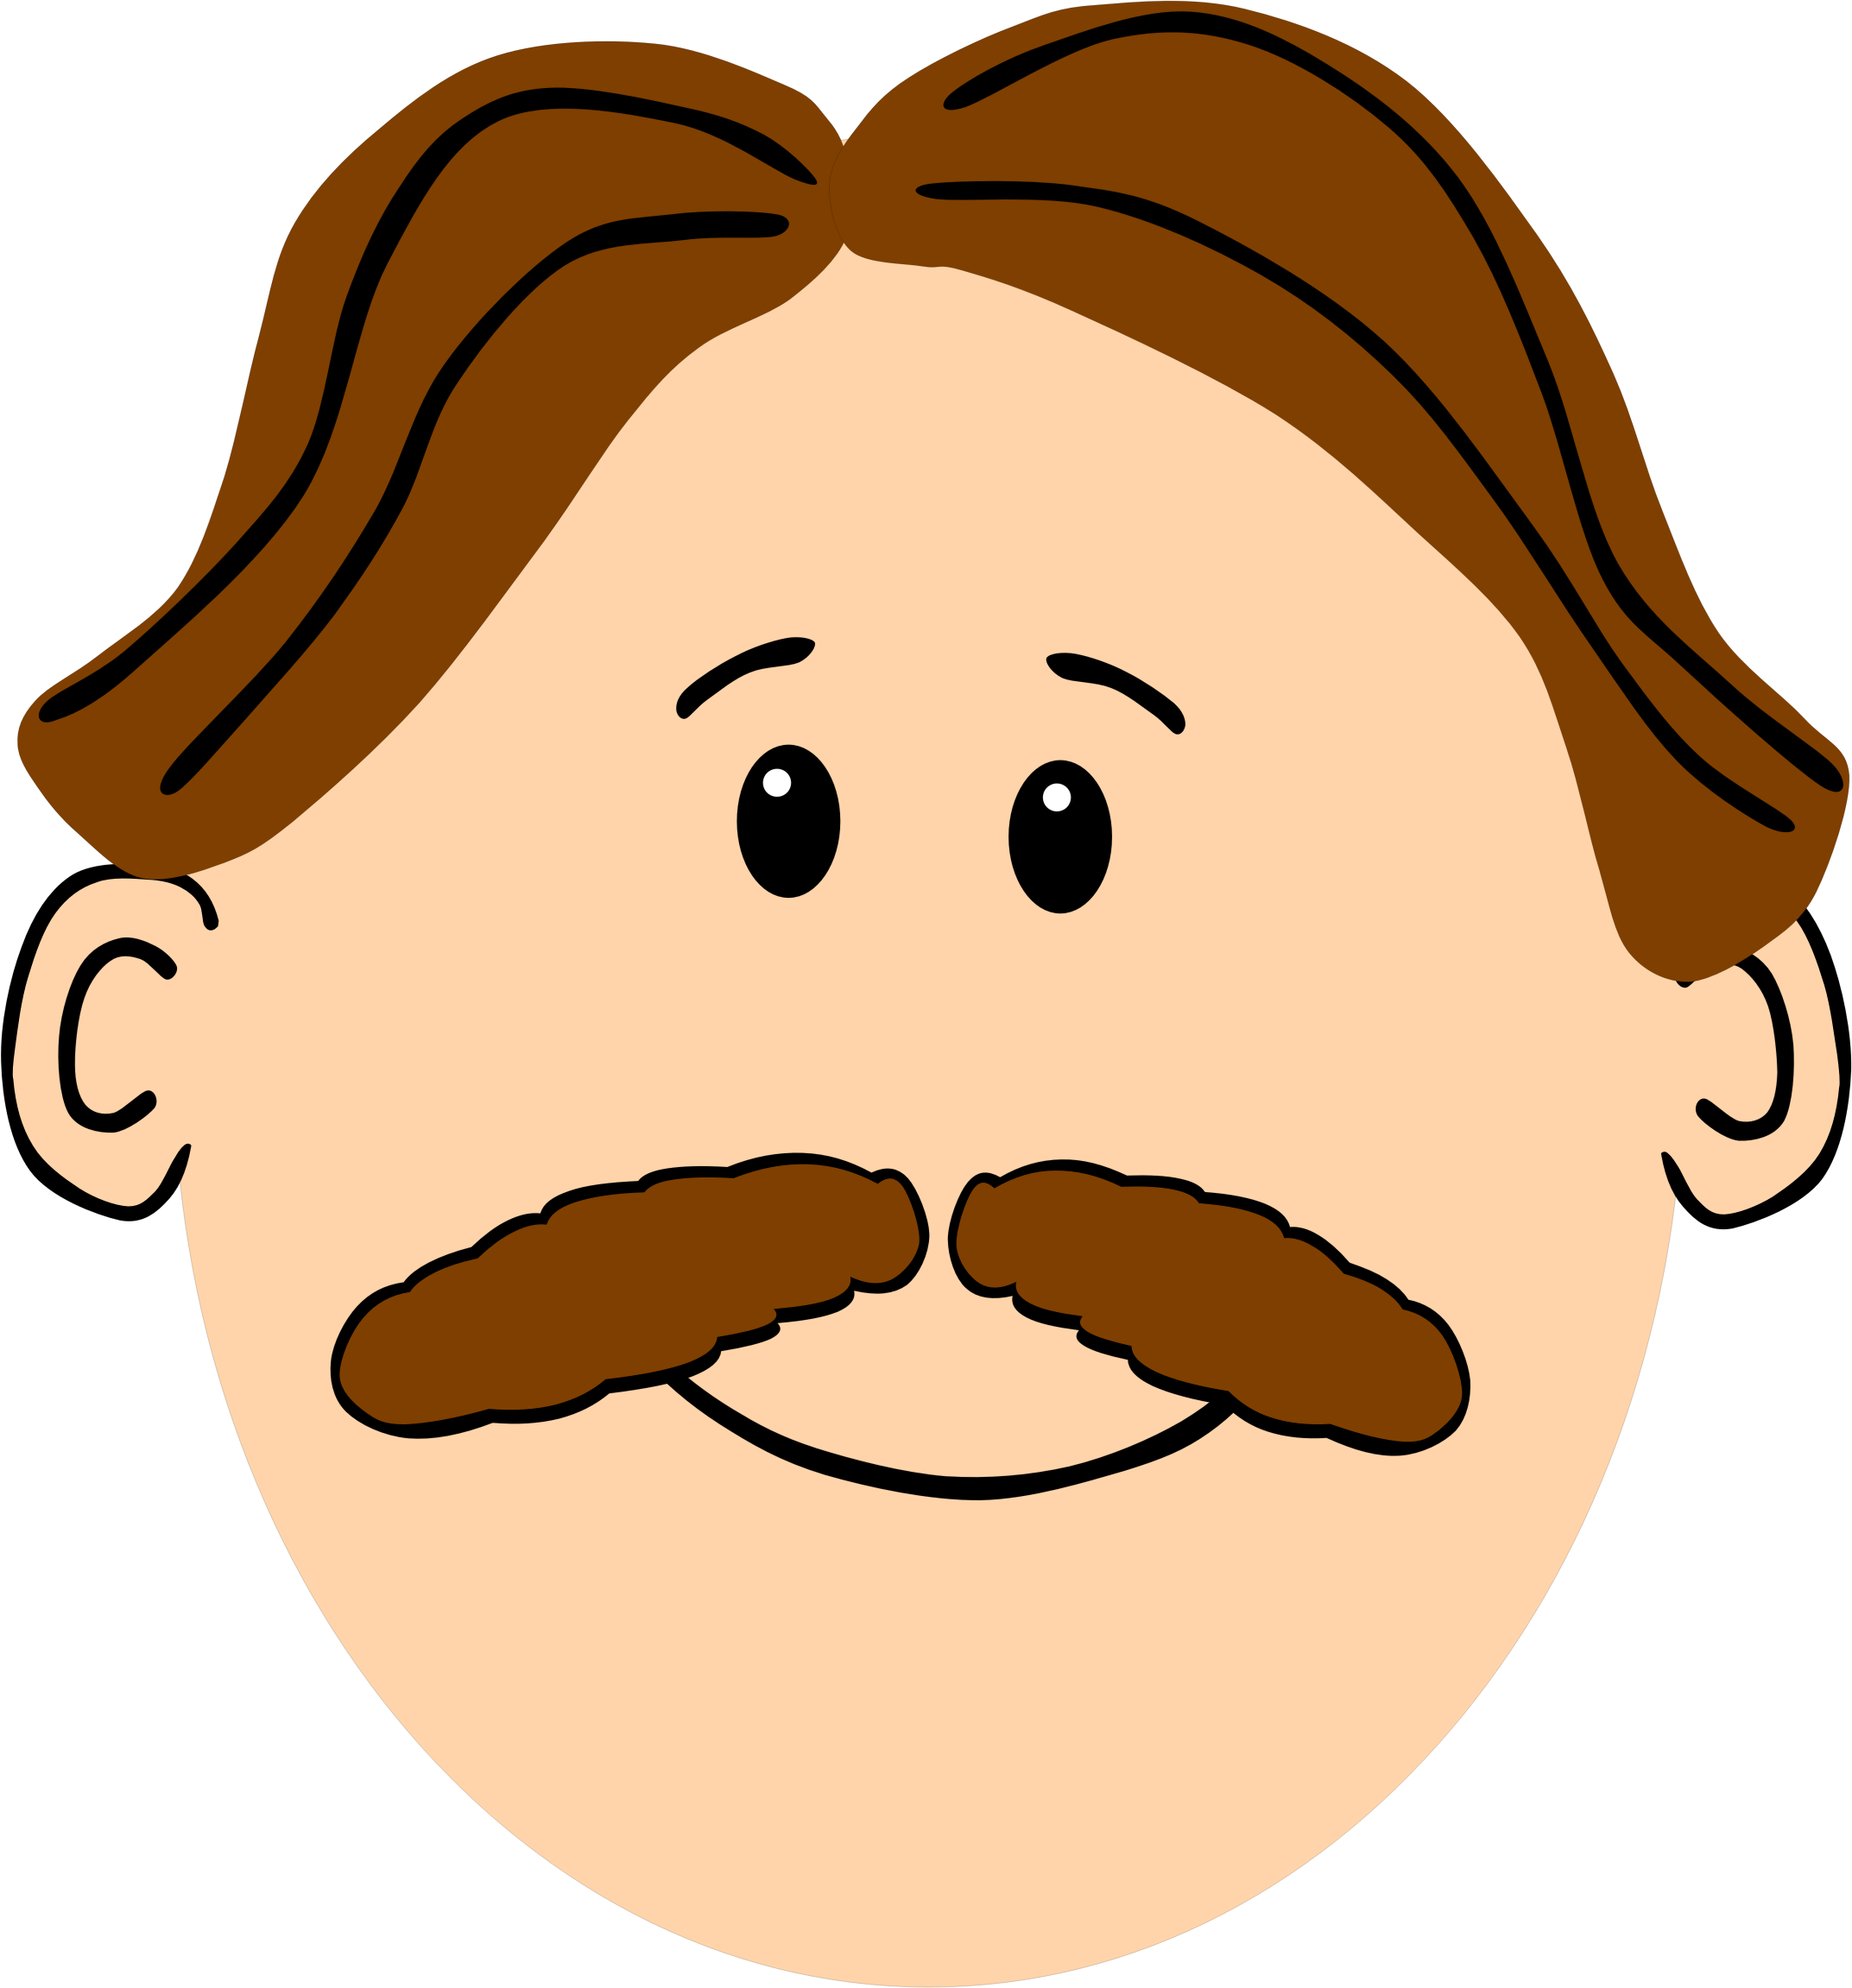 With hair and mustache. Clipart smile brown haired man